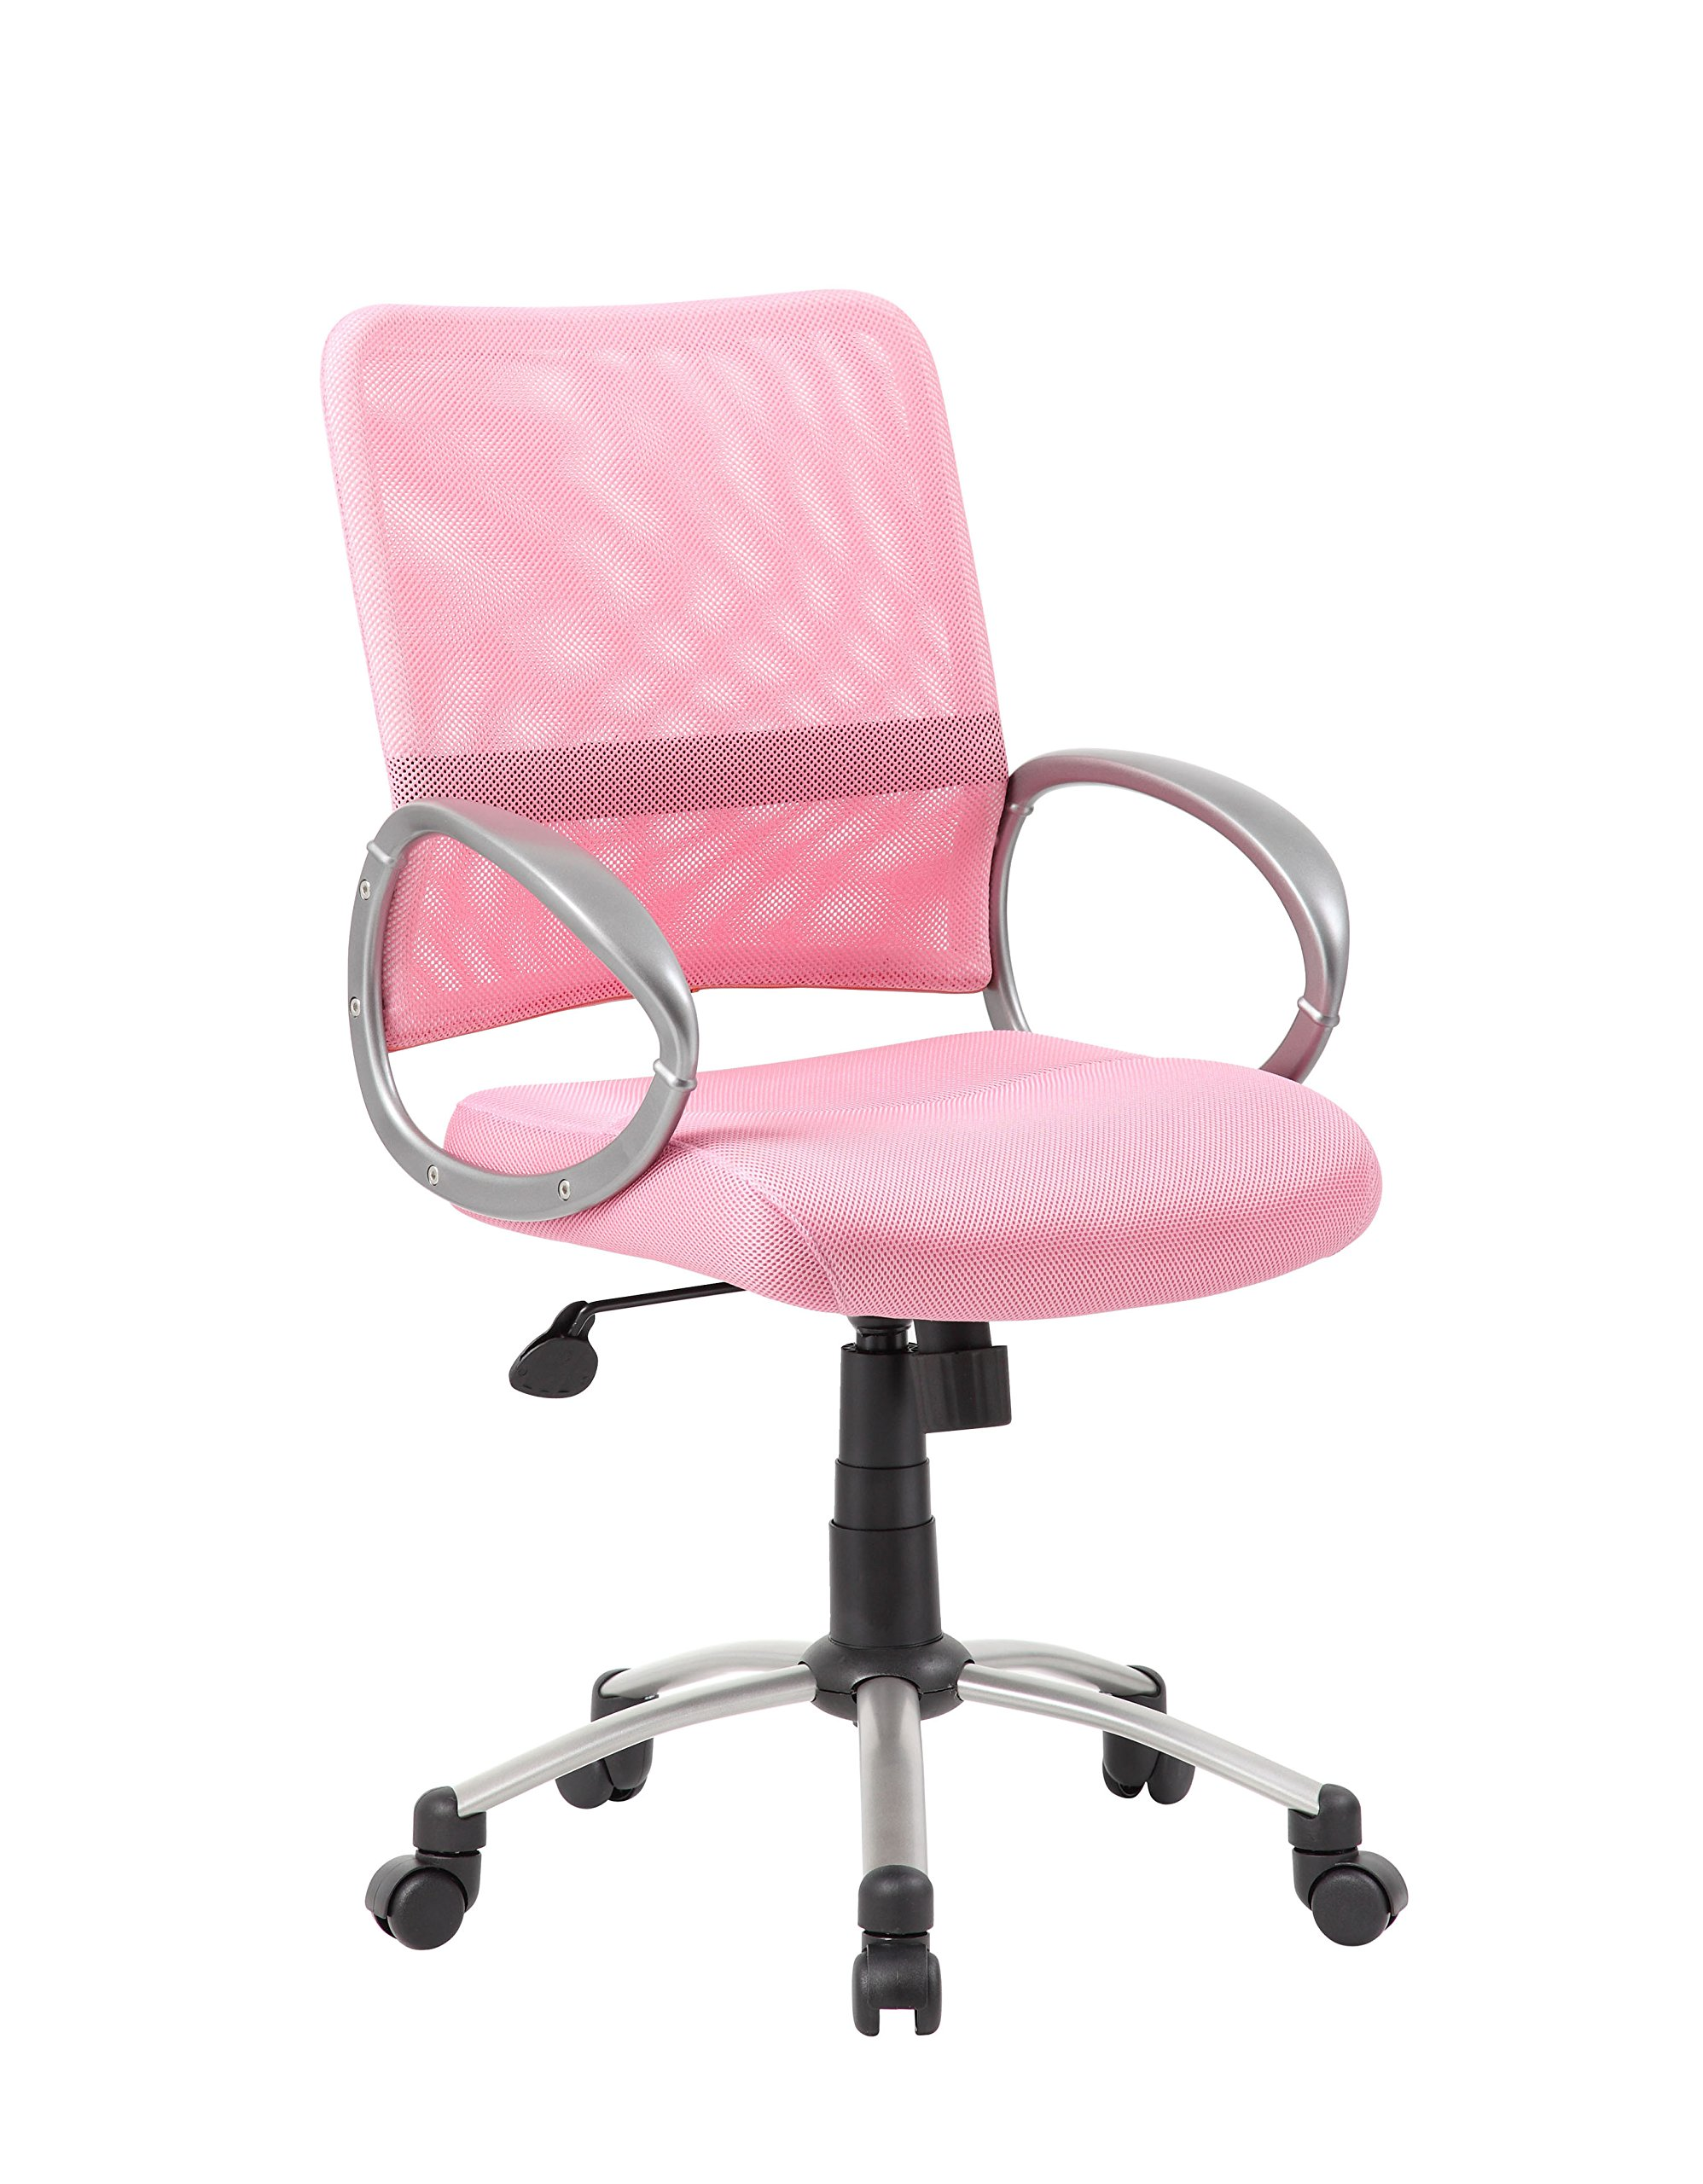 Boss Office Products B6416-PK Mesh Back Task Chair with Pewter Finish in Pink by Boss Office Products